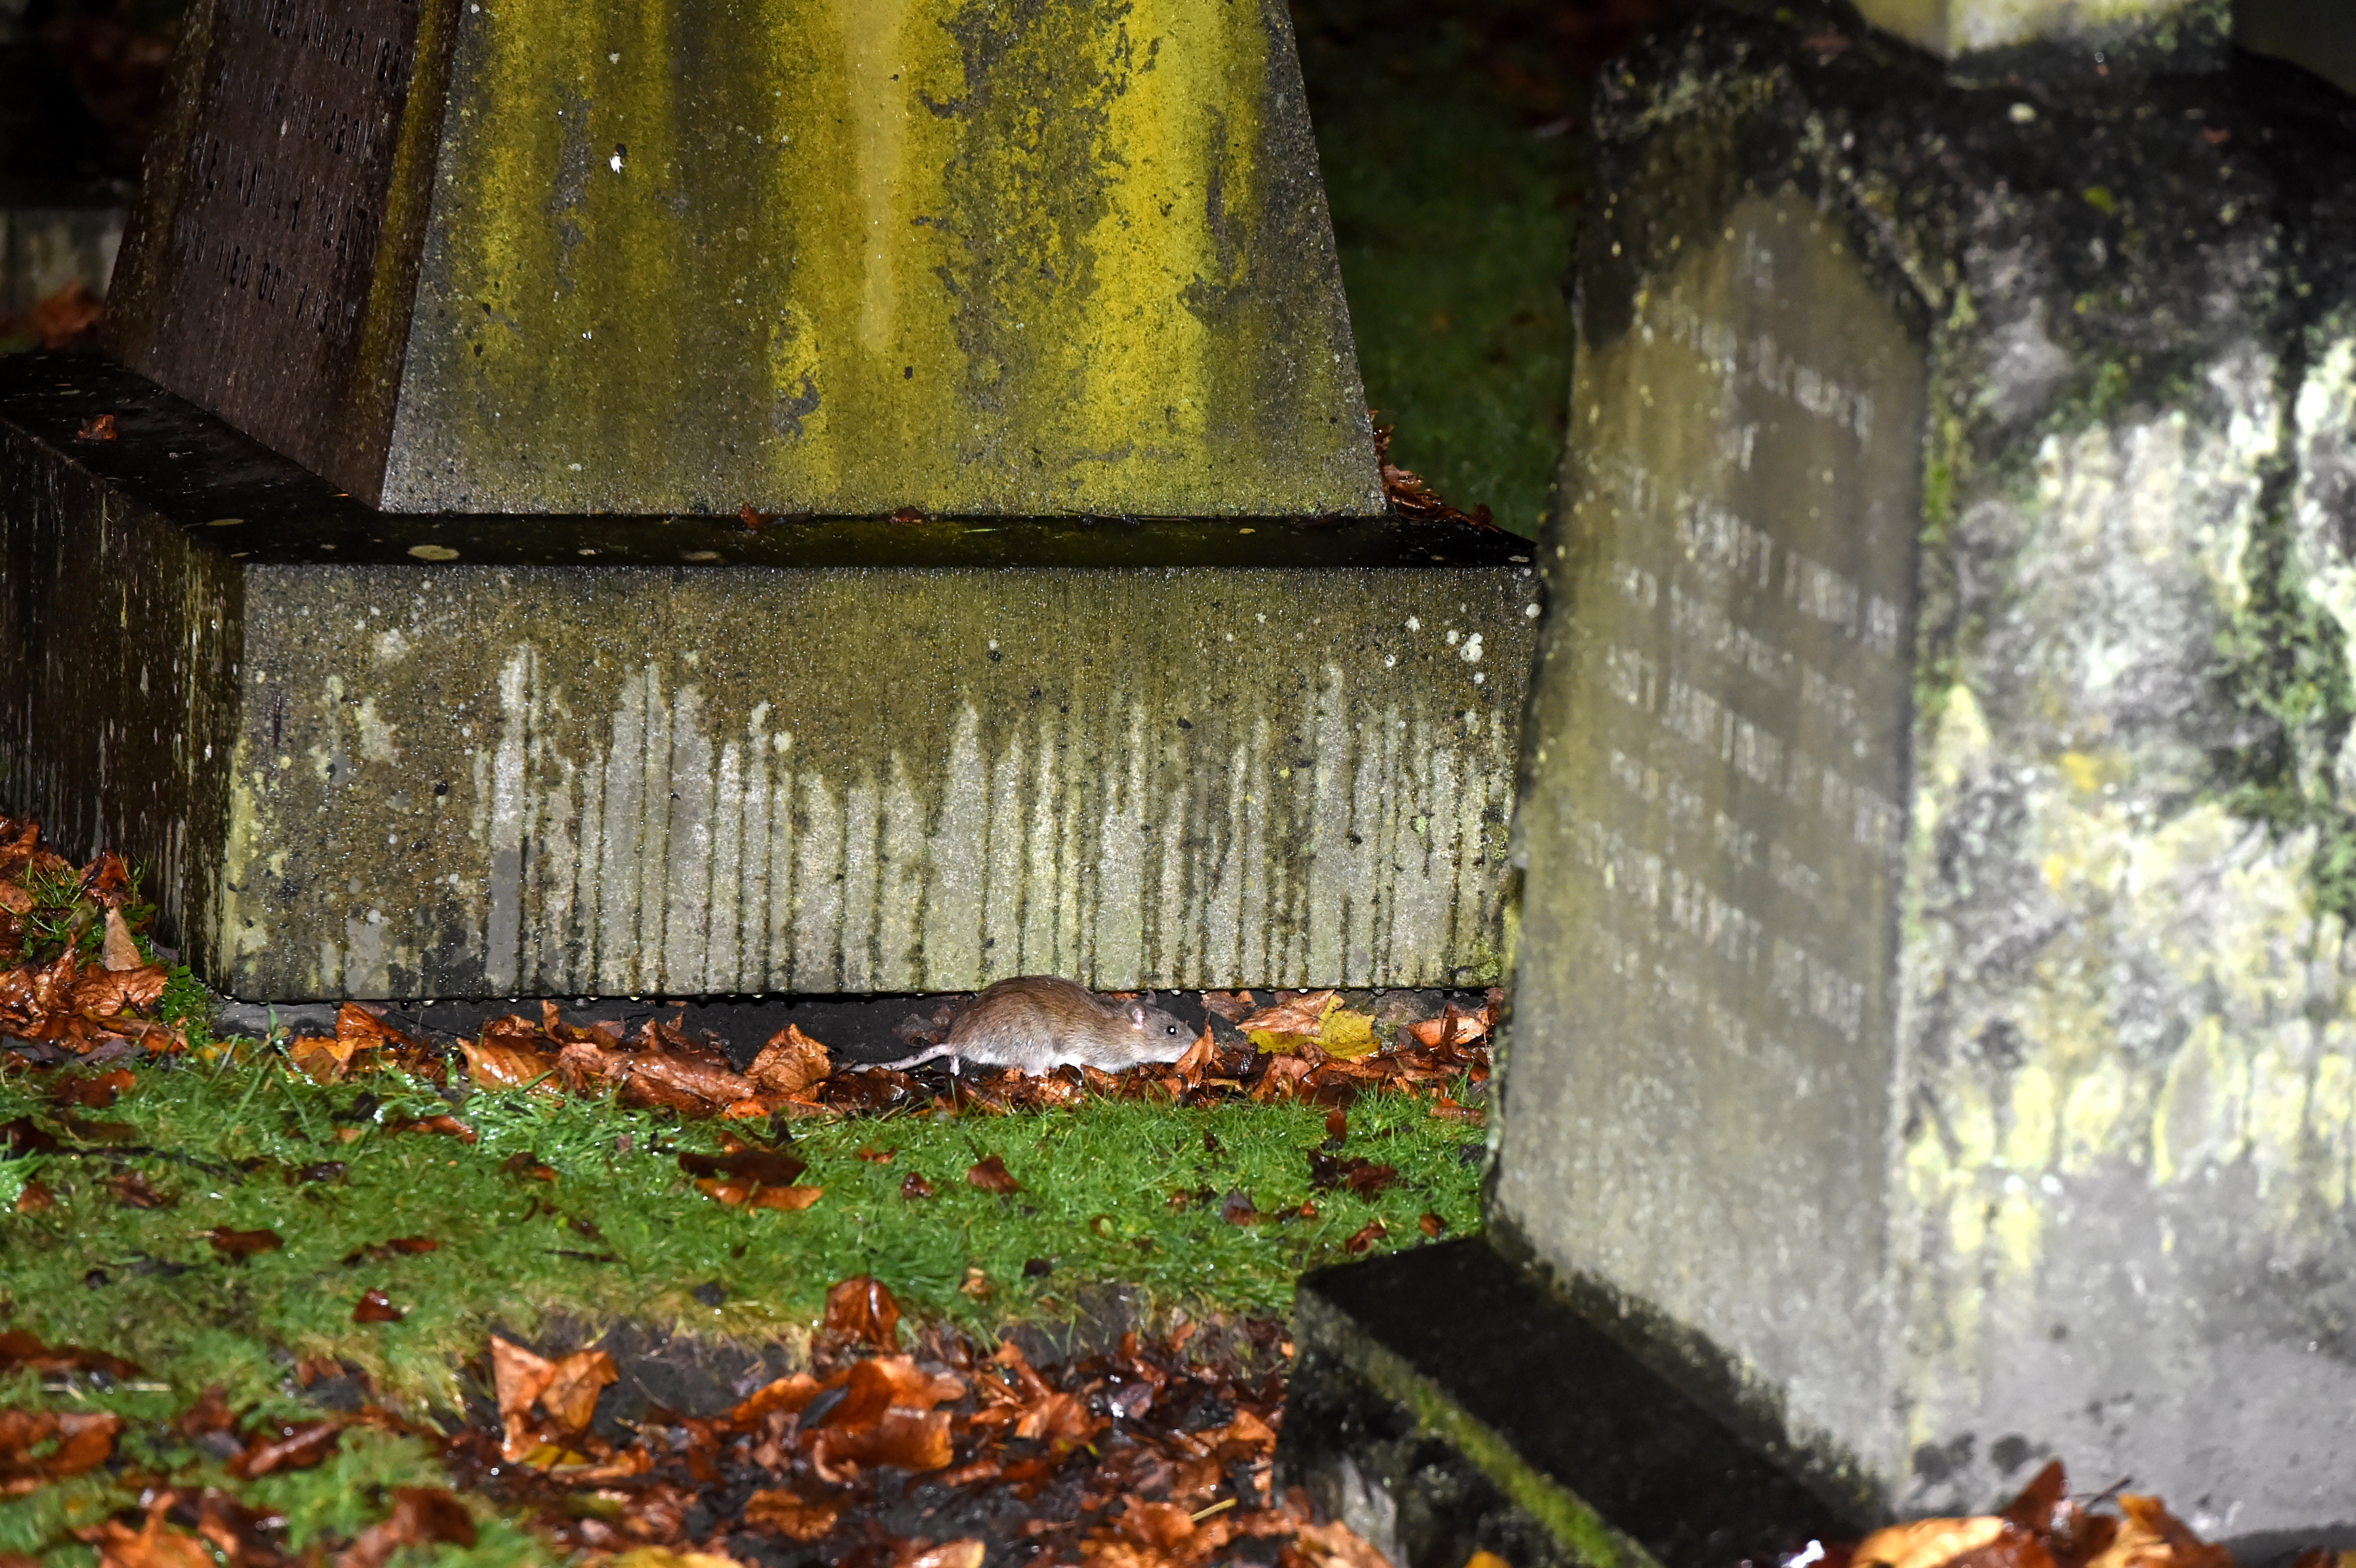 One rodent in the graveyard.  Picture by KENNY ELRICK